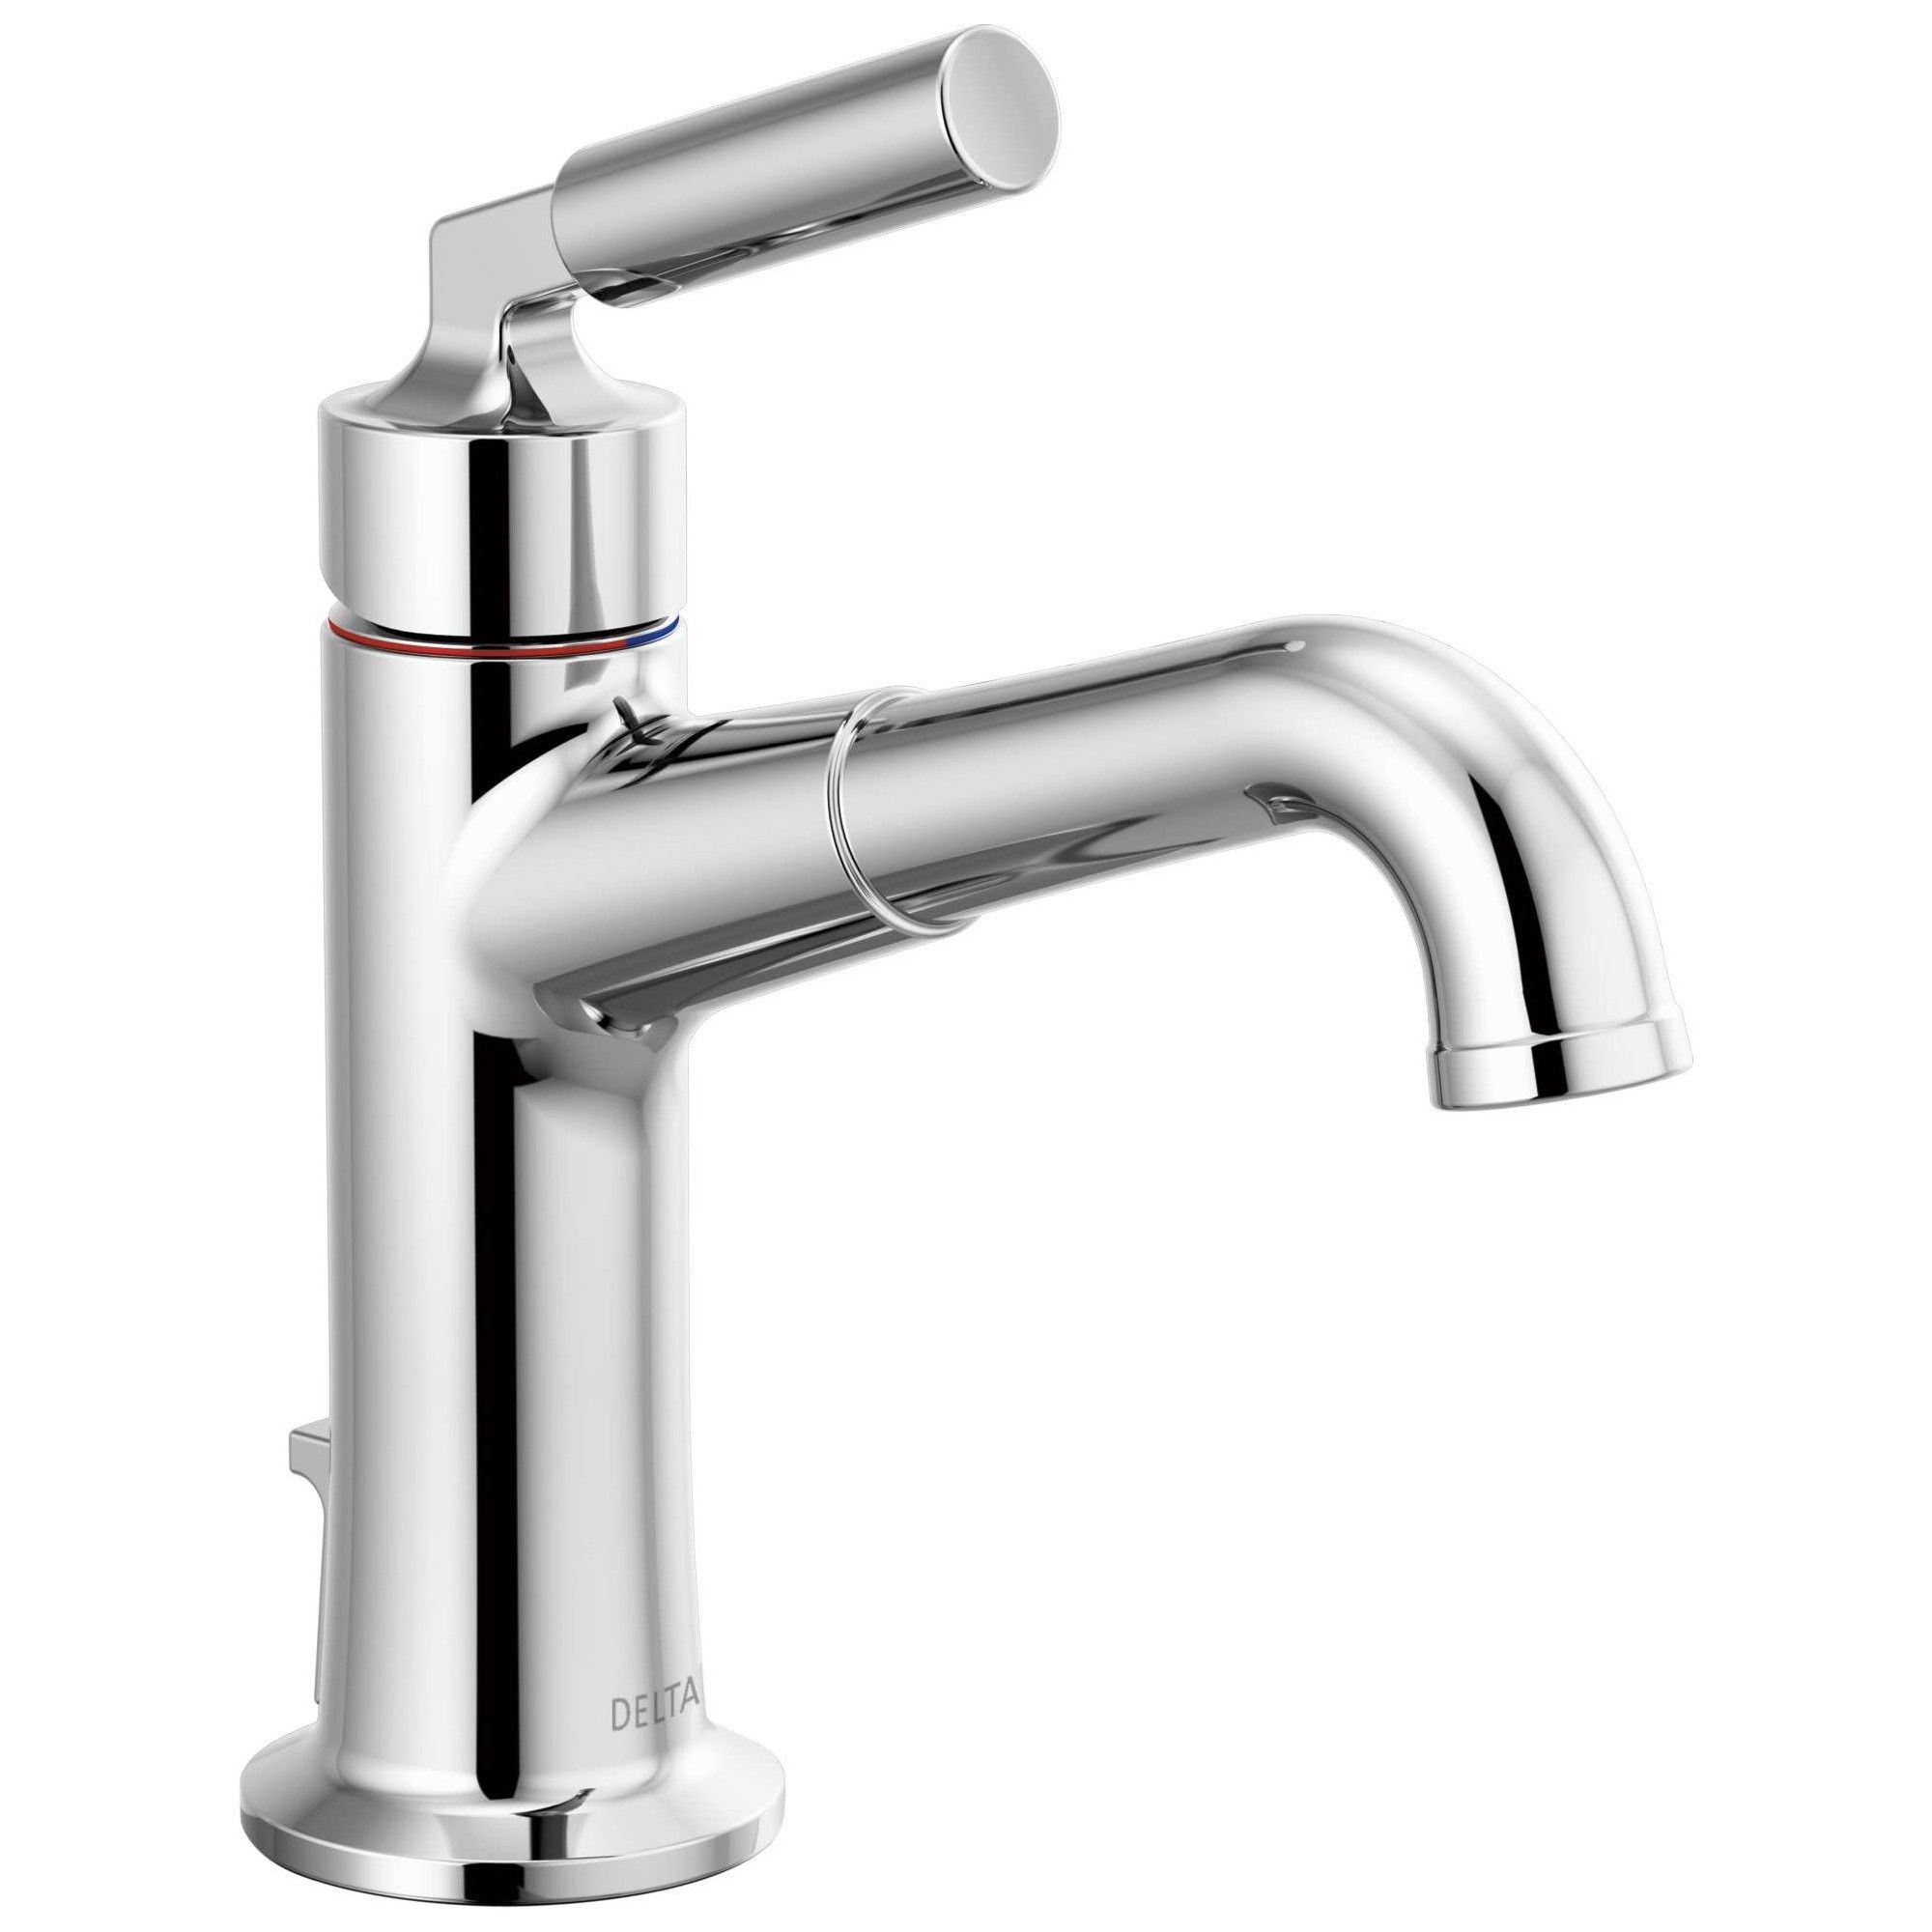 Delta Faucet 548lf Mpu Bowery 1 2 Gpm Single Hole Bathroom Faucet